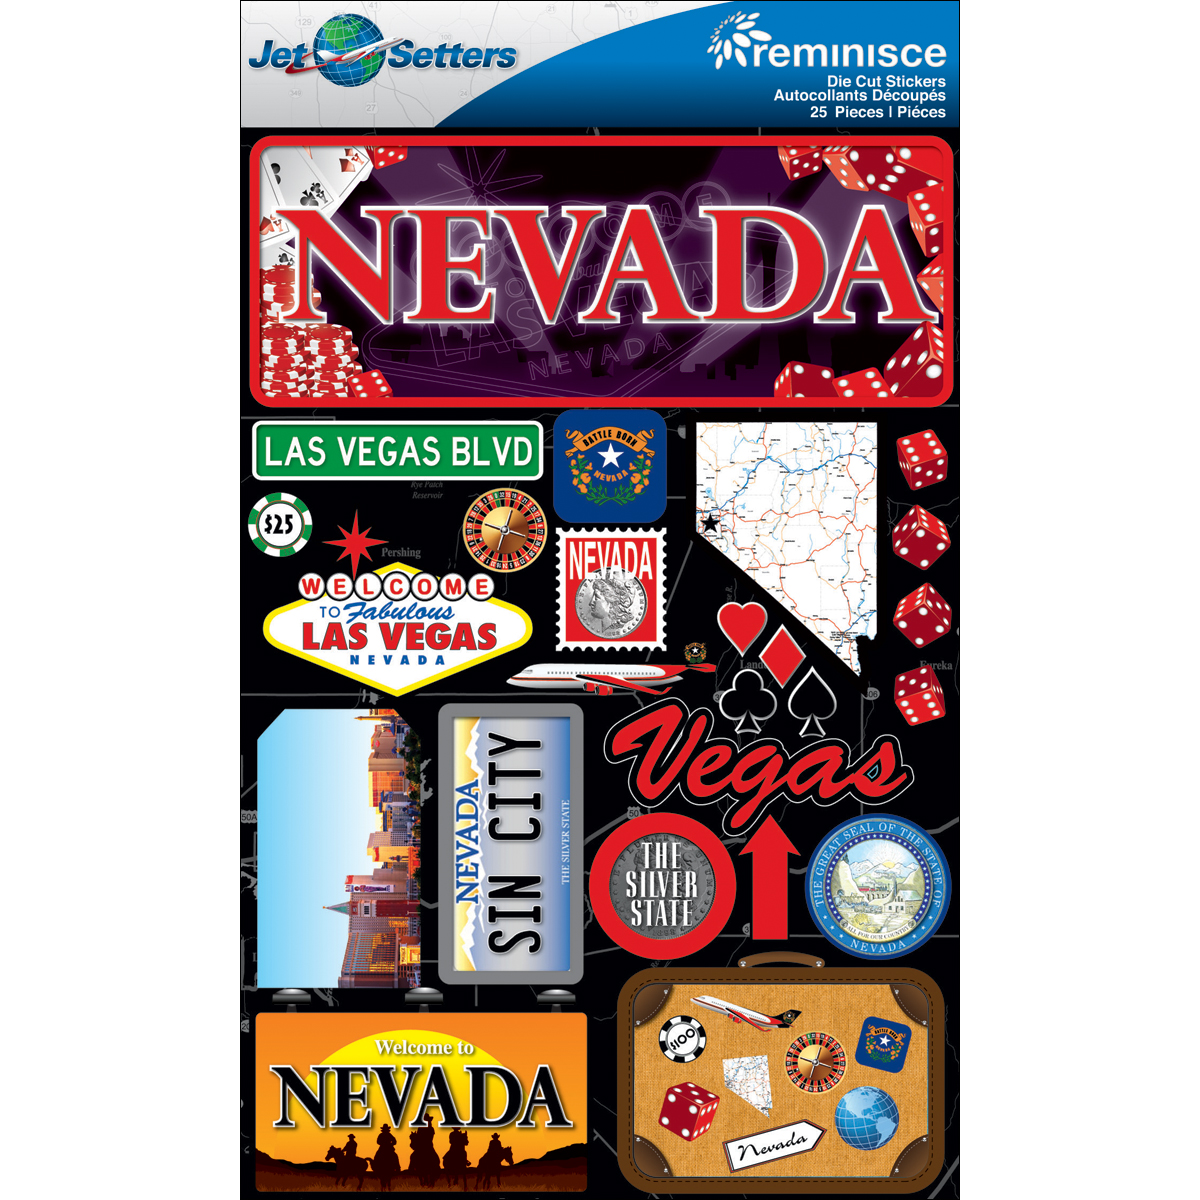 Reminisce Jet Setters State Dimensional Stickers 4.5X7.5-Nevada